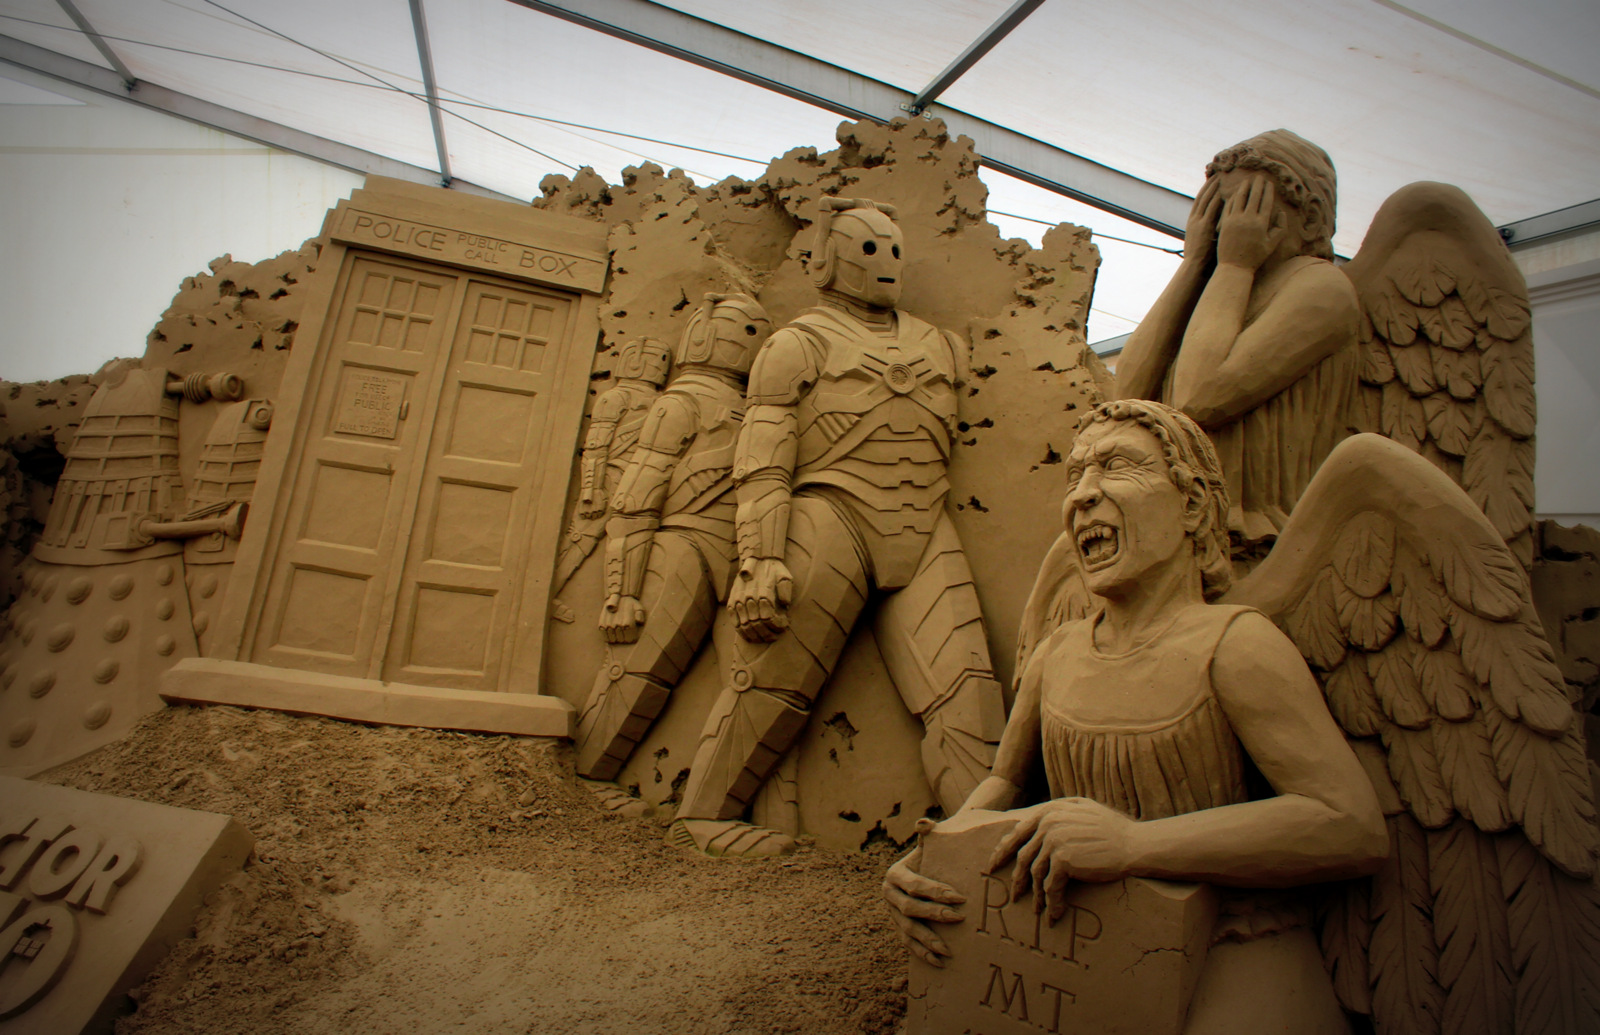 Doctor Who at Sandworld